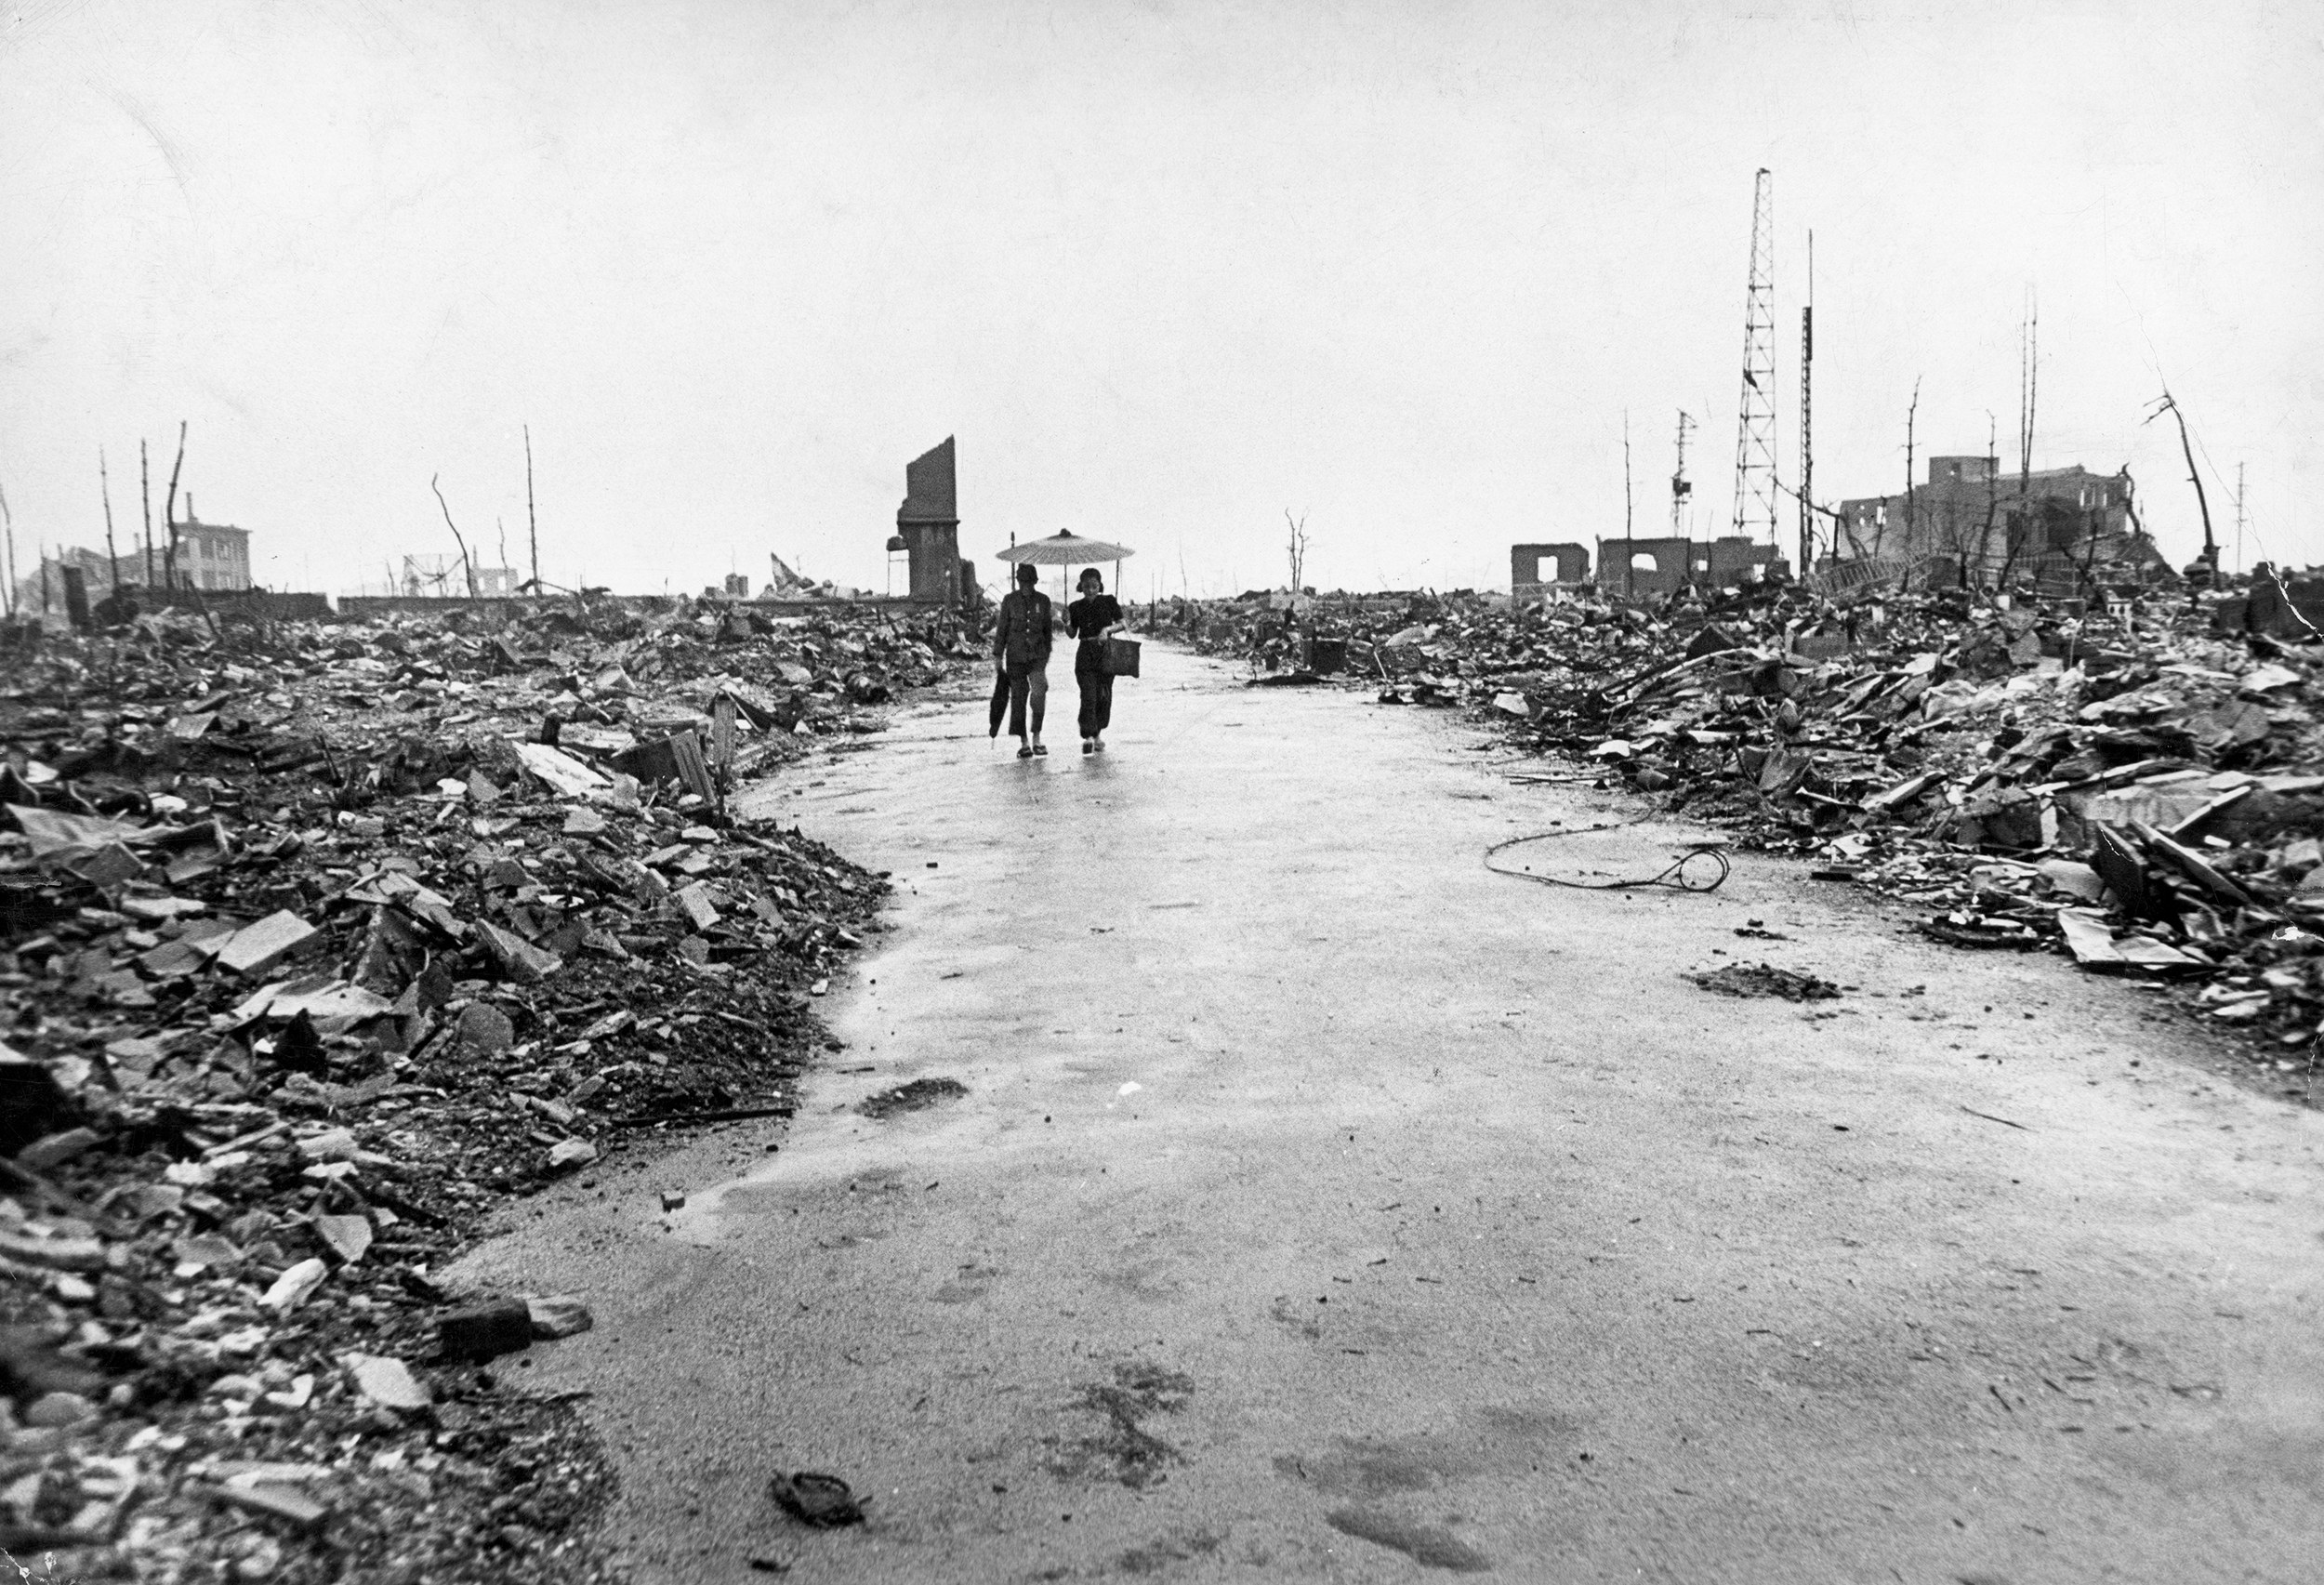 Two people holding an umbrella walk down a destroyed street with rubble on either side